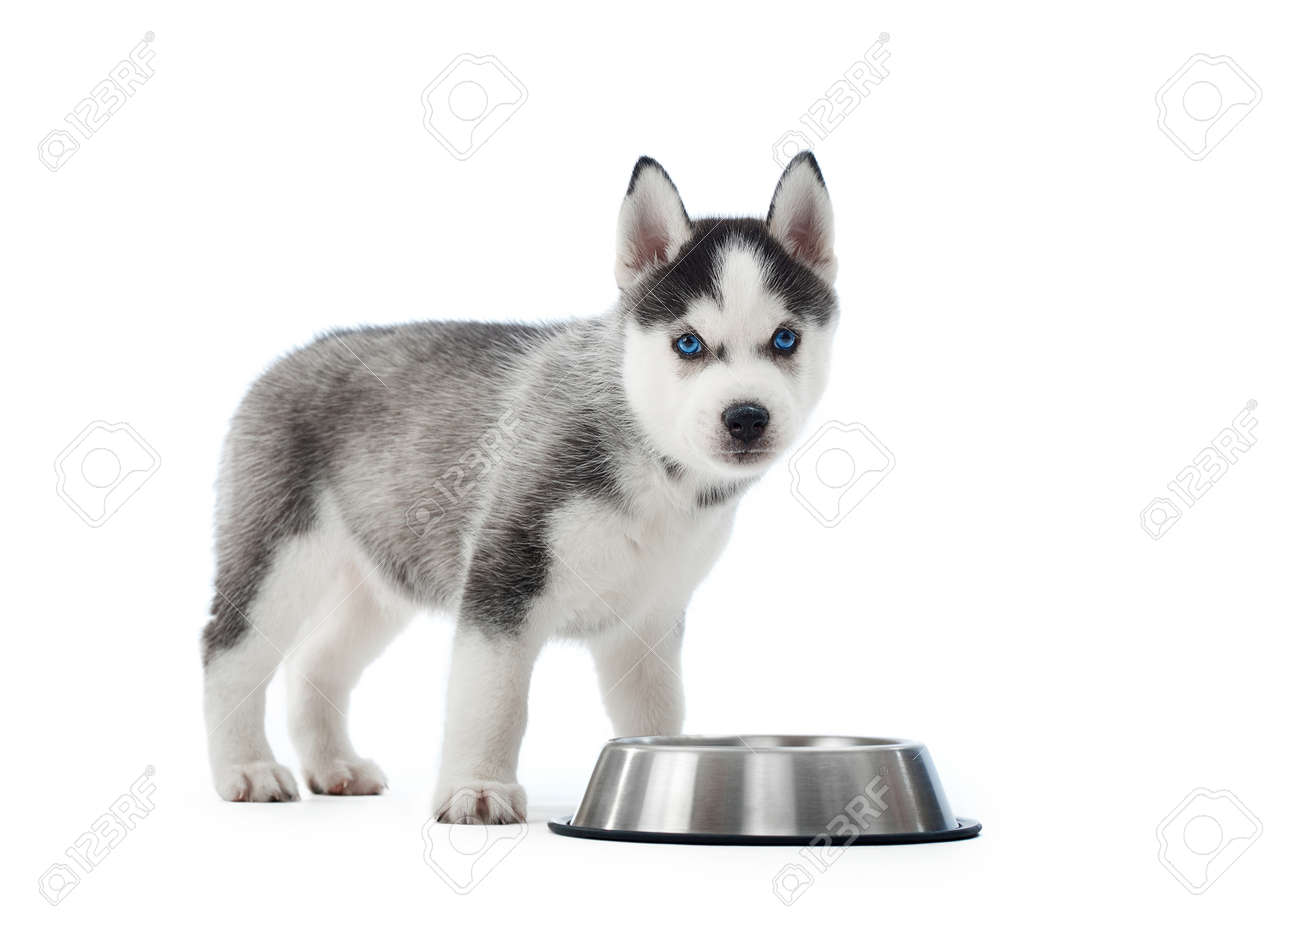 Carried Puppy Of Siberian Husky Dog Standing Near Silver Plate